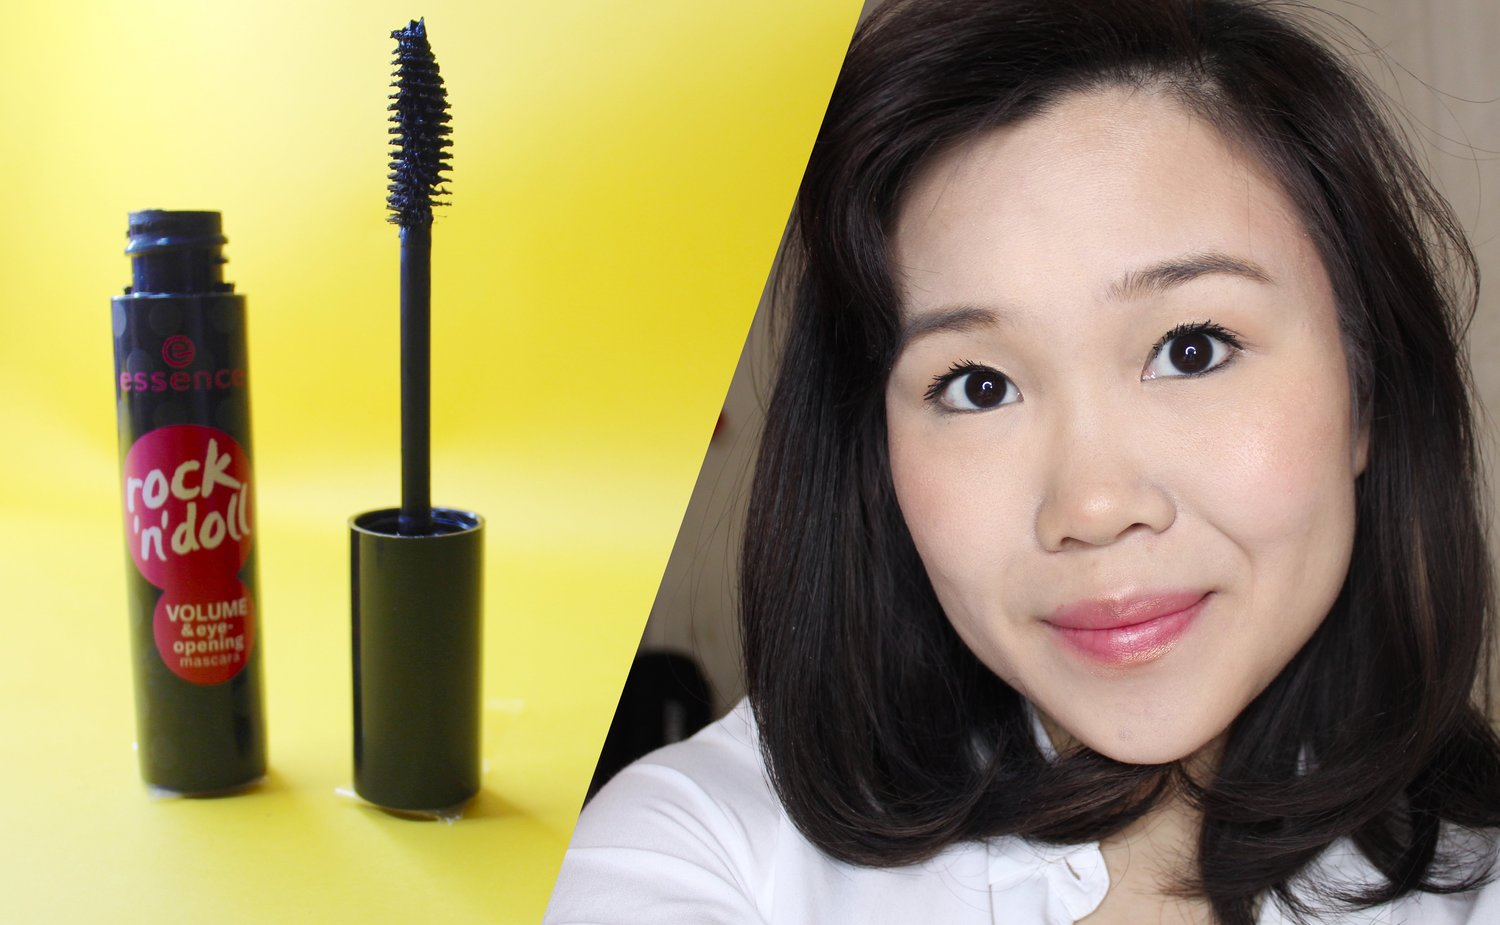 This under P280 drugstore mascara delivers the drama